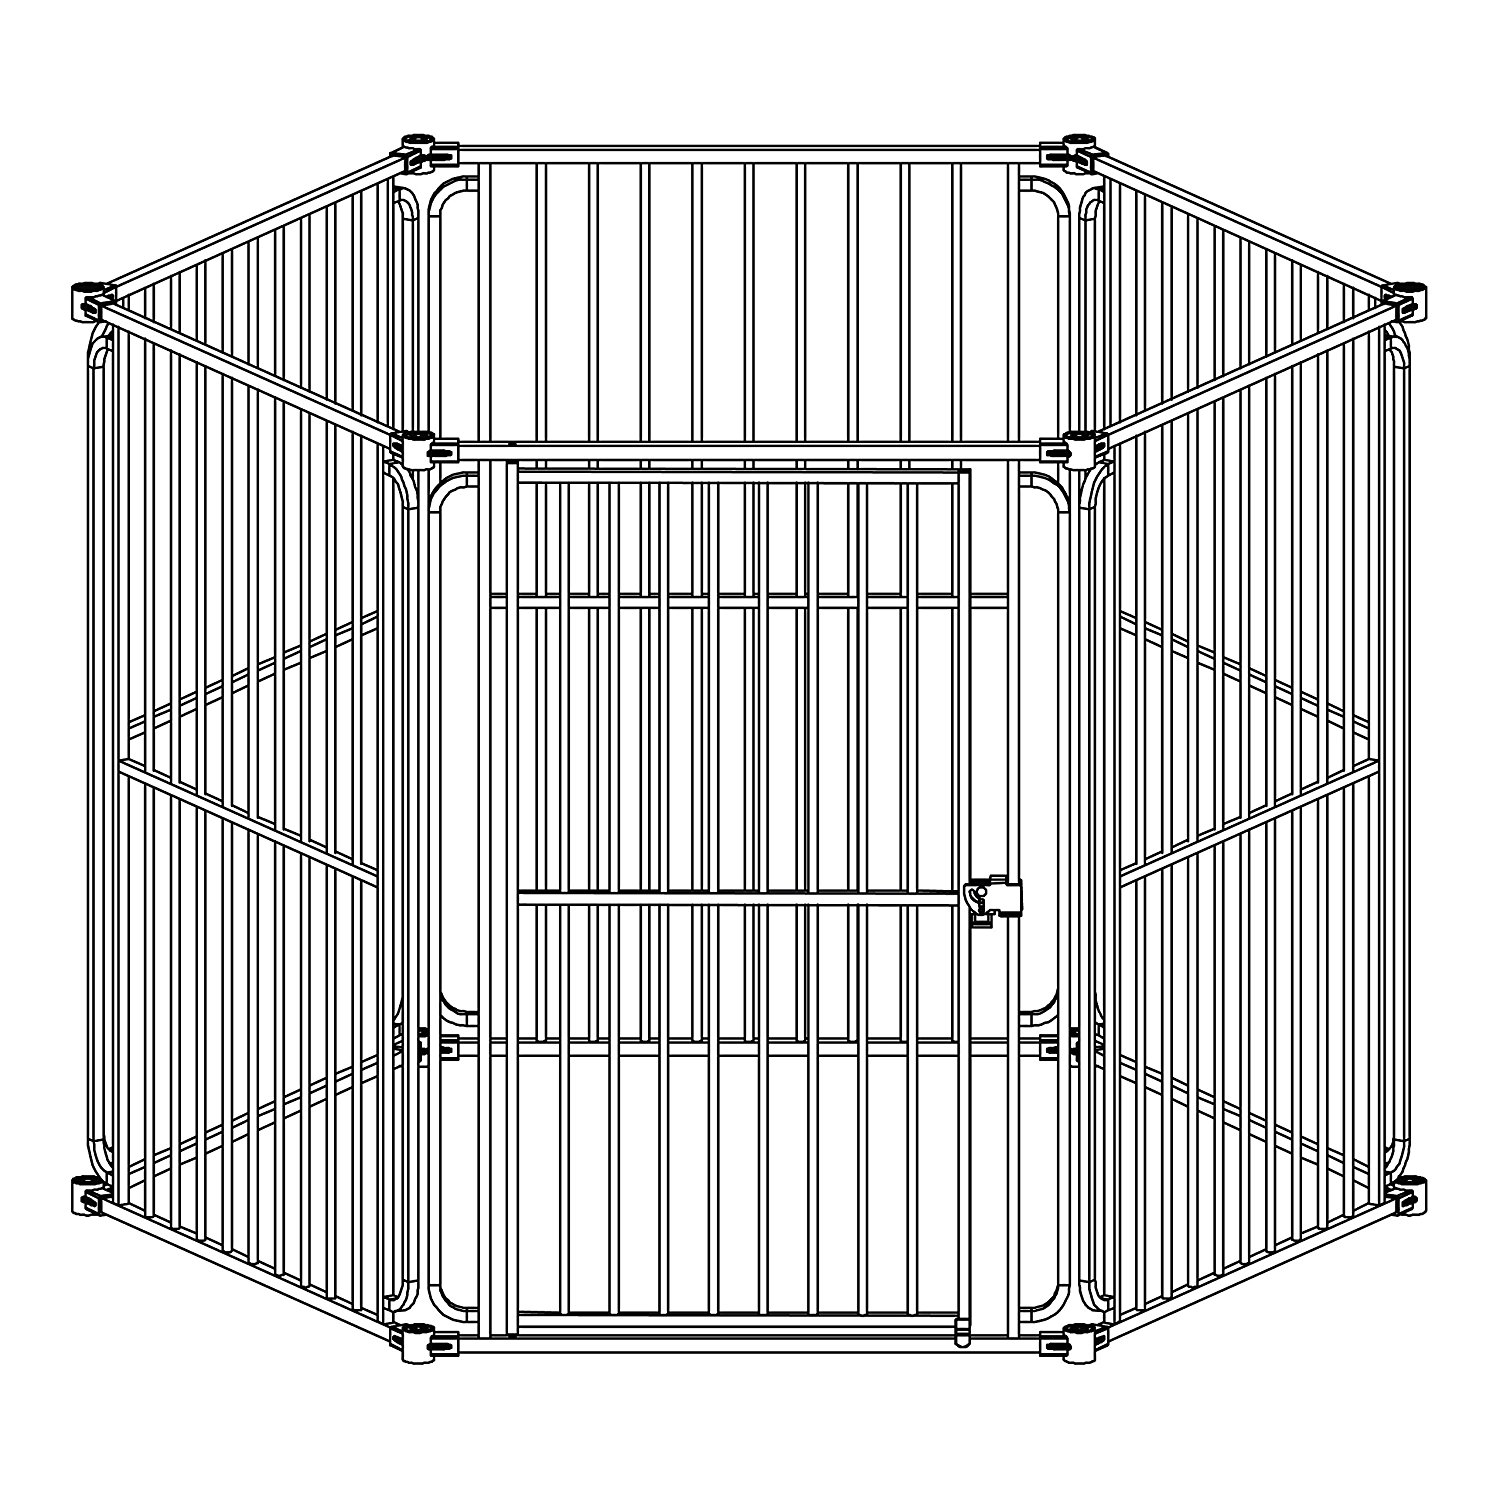 DK6P60 6 Panel Heavy Duty Modular Dog Playpen with Door Large Sized 28.5 x 42 In